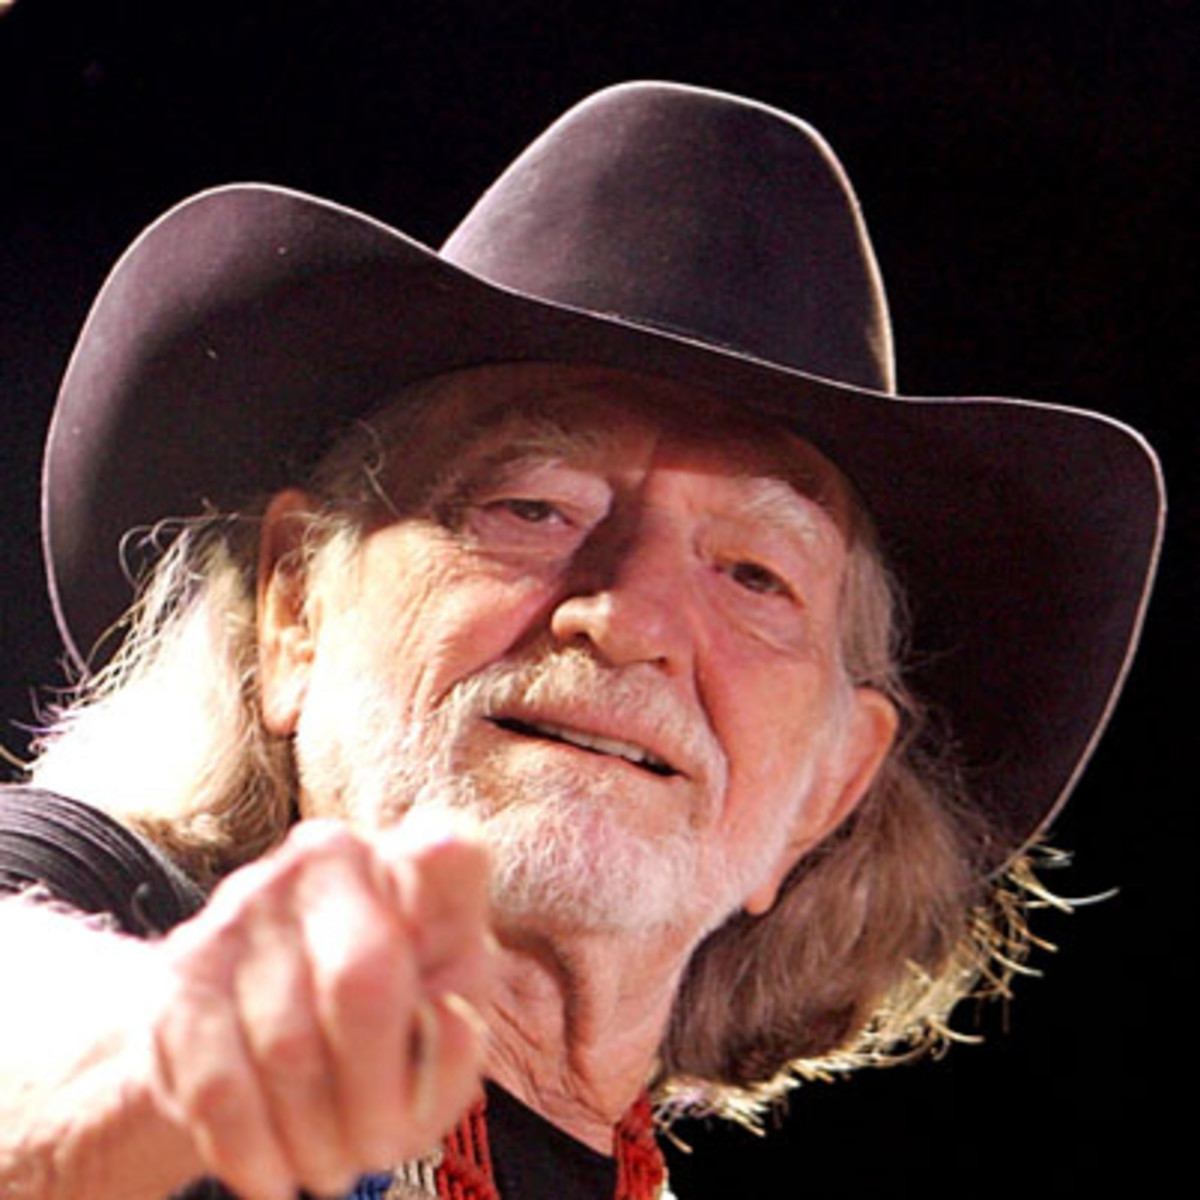 Willie Nelson Photo (Getty Images)